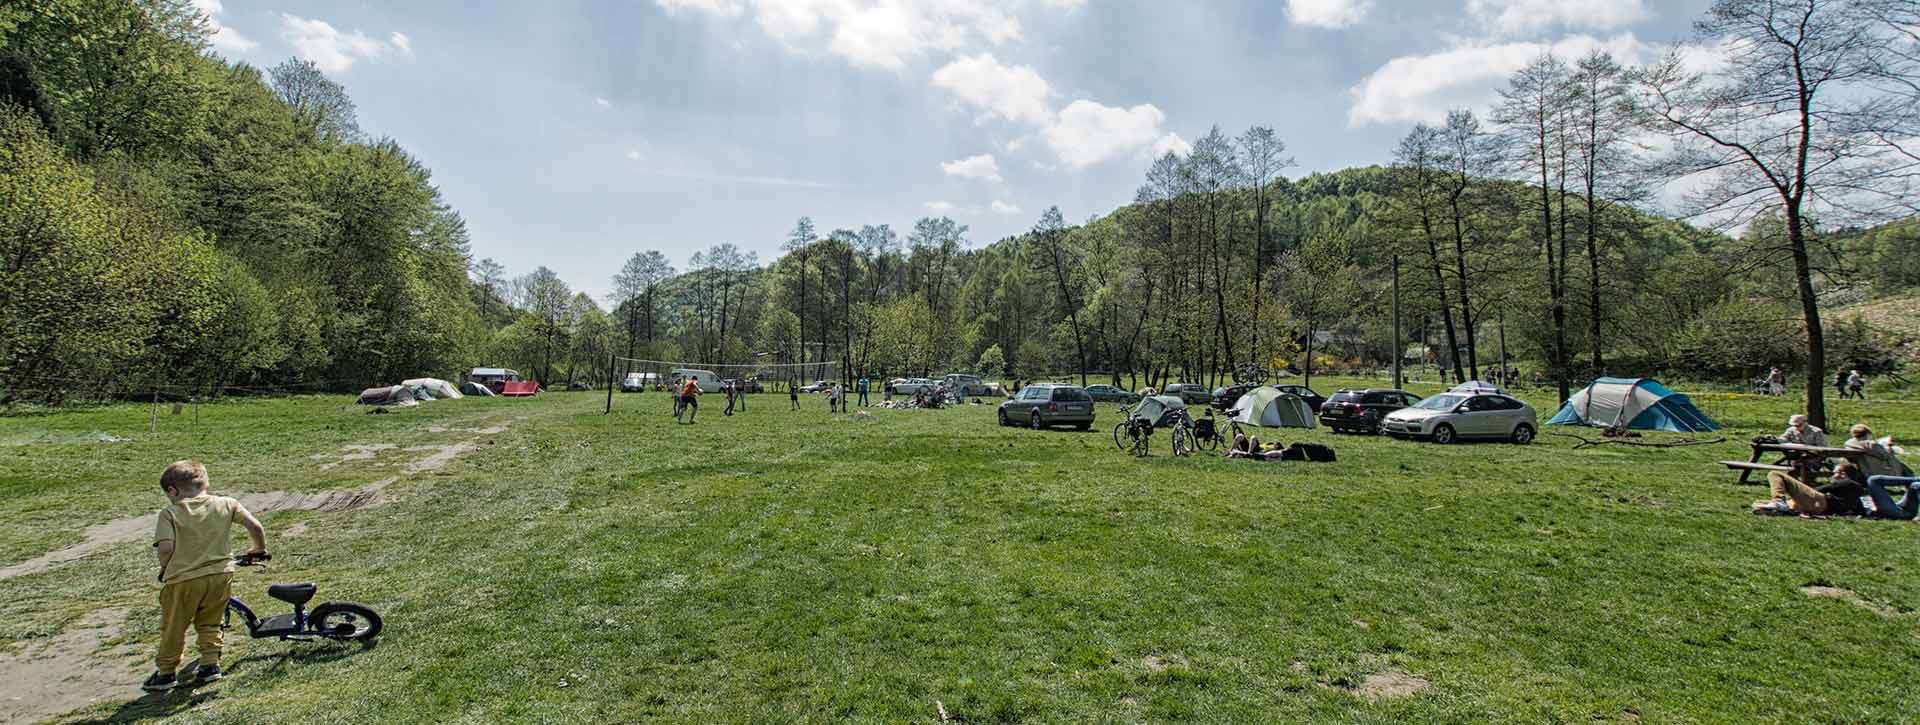 Campground in the Będkowska valley. Campfire, party, corporate event.